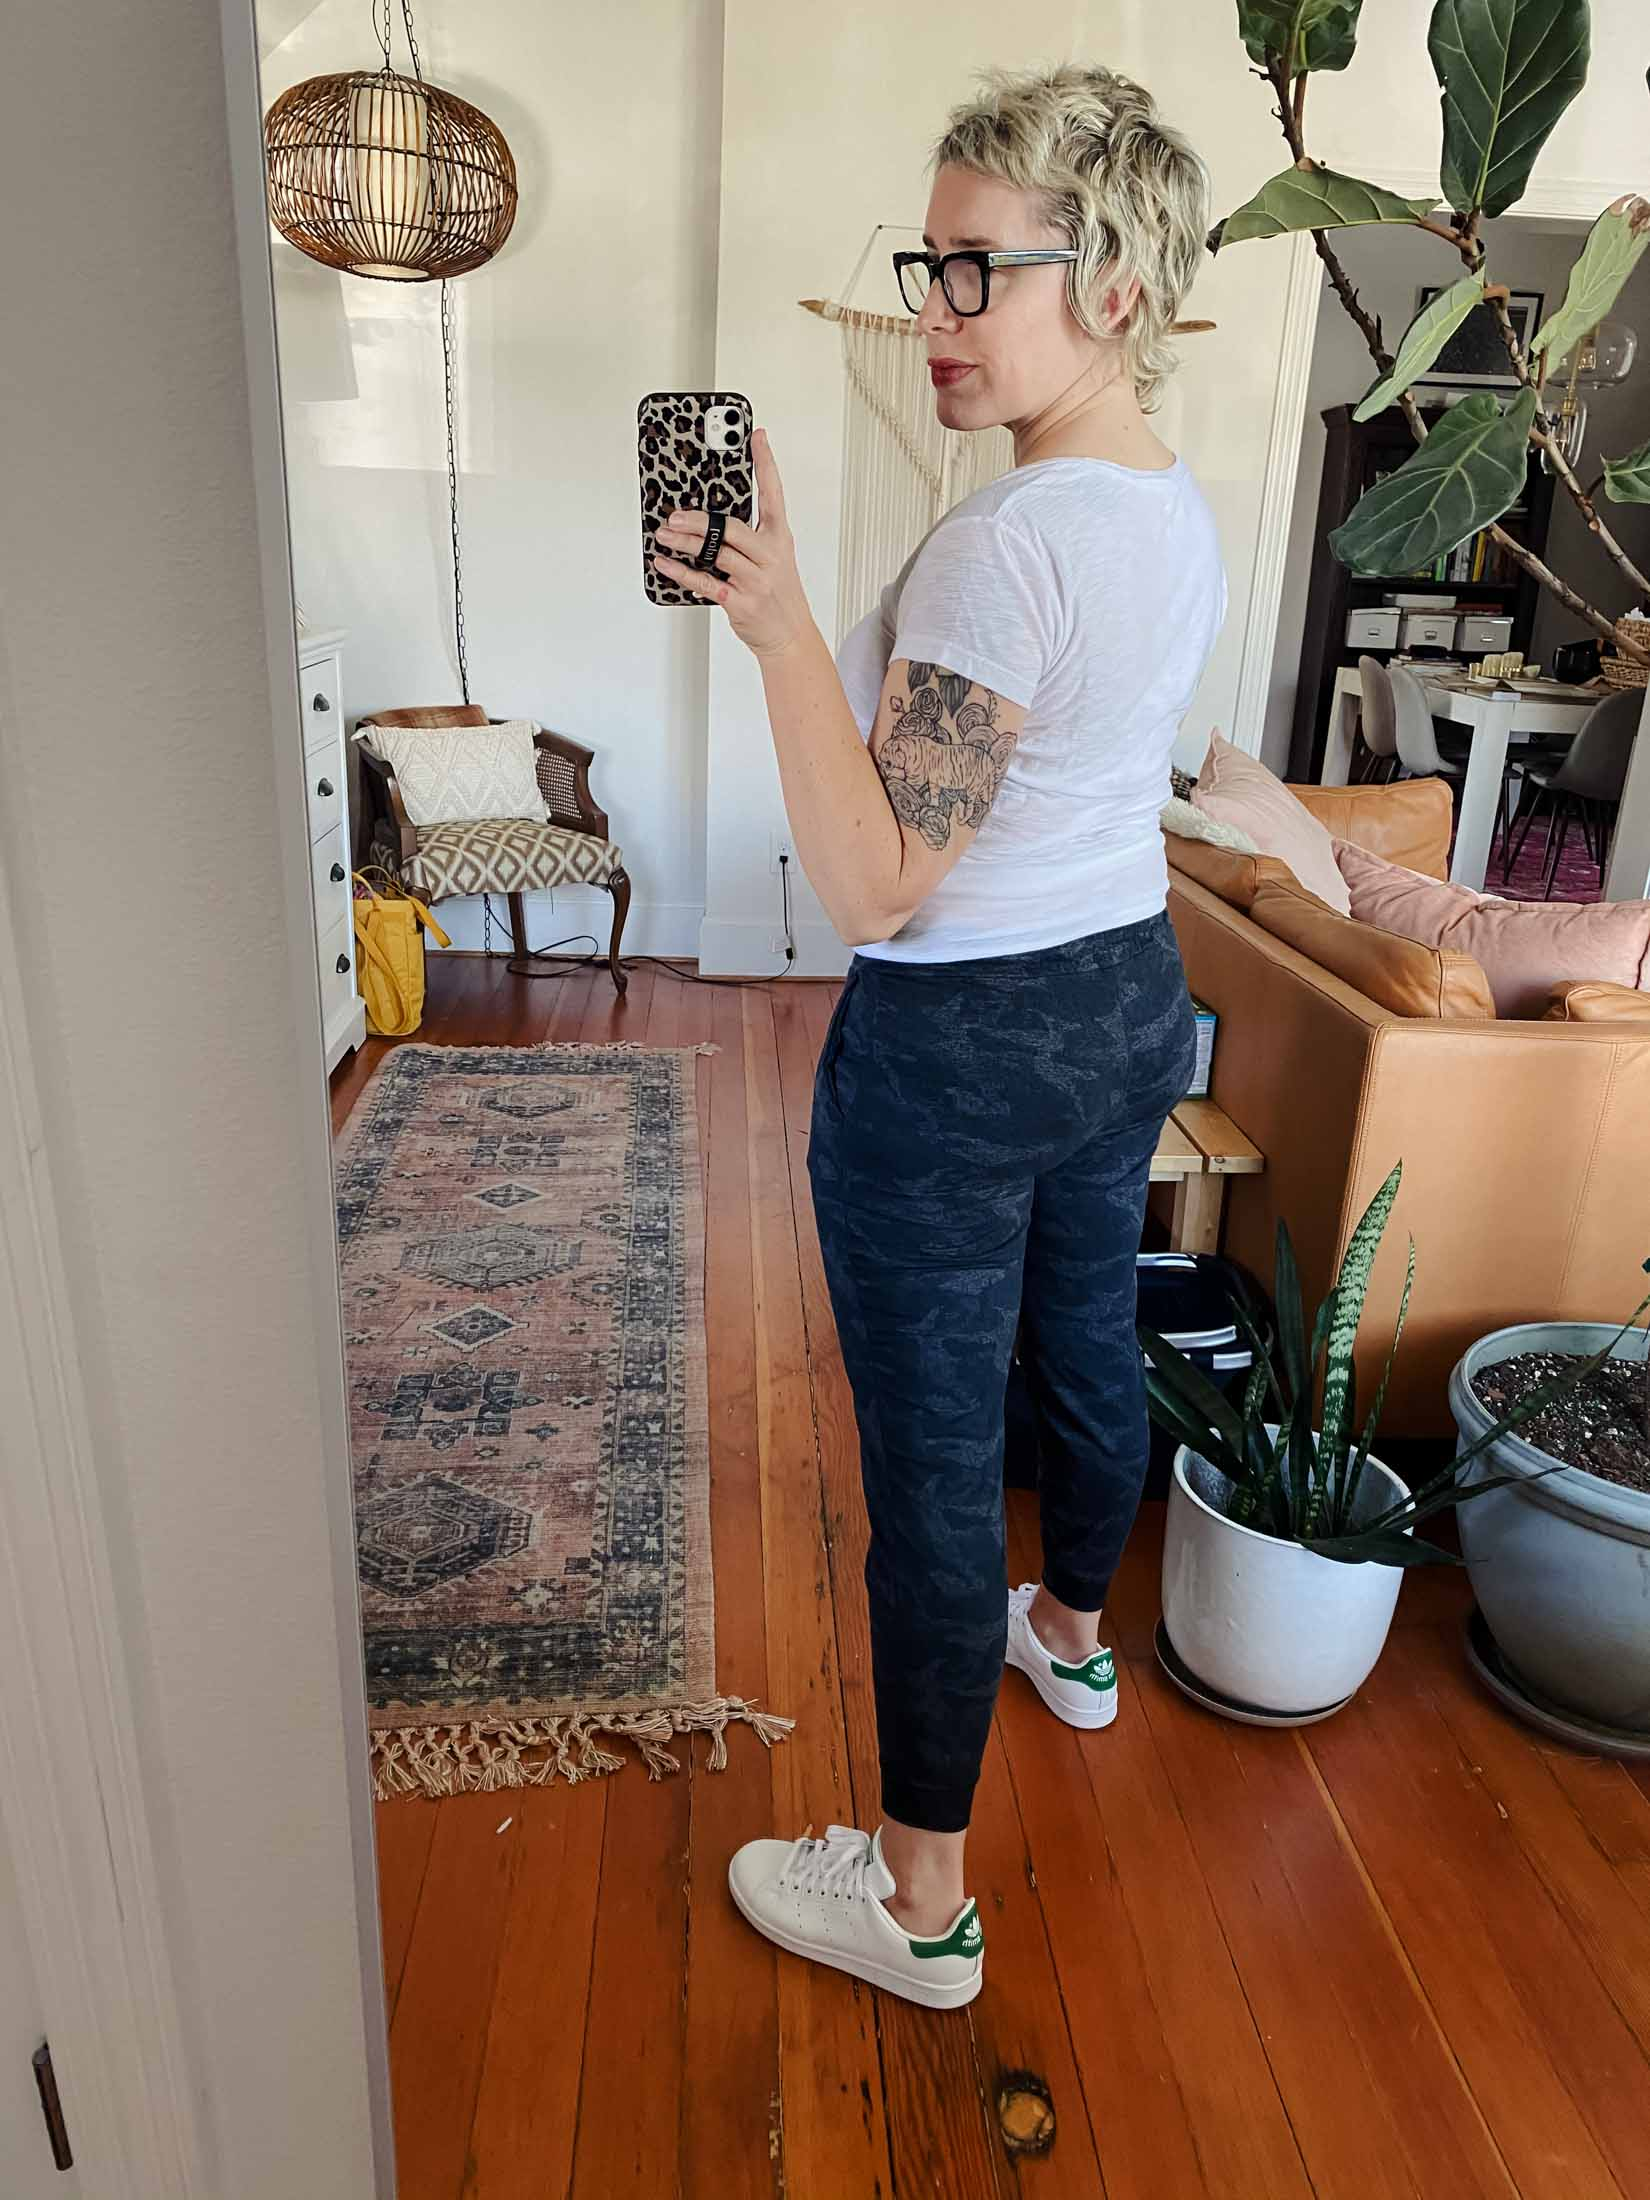 The Vuori Performance Joggers are insanely soft, they don't stretch at the knees, AND they're are short enough for petites. Let's check out 10 ways to style 'em.